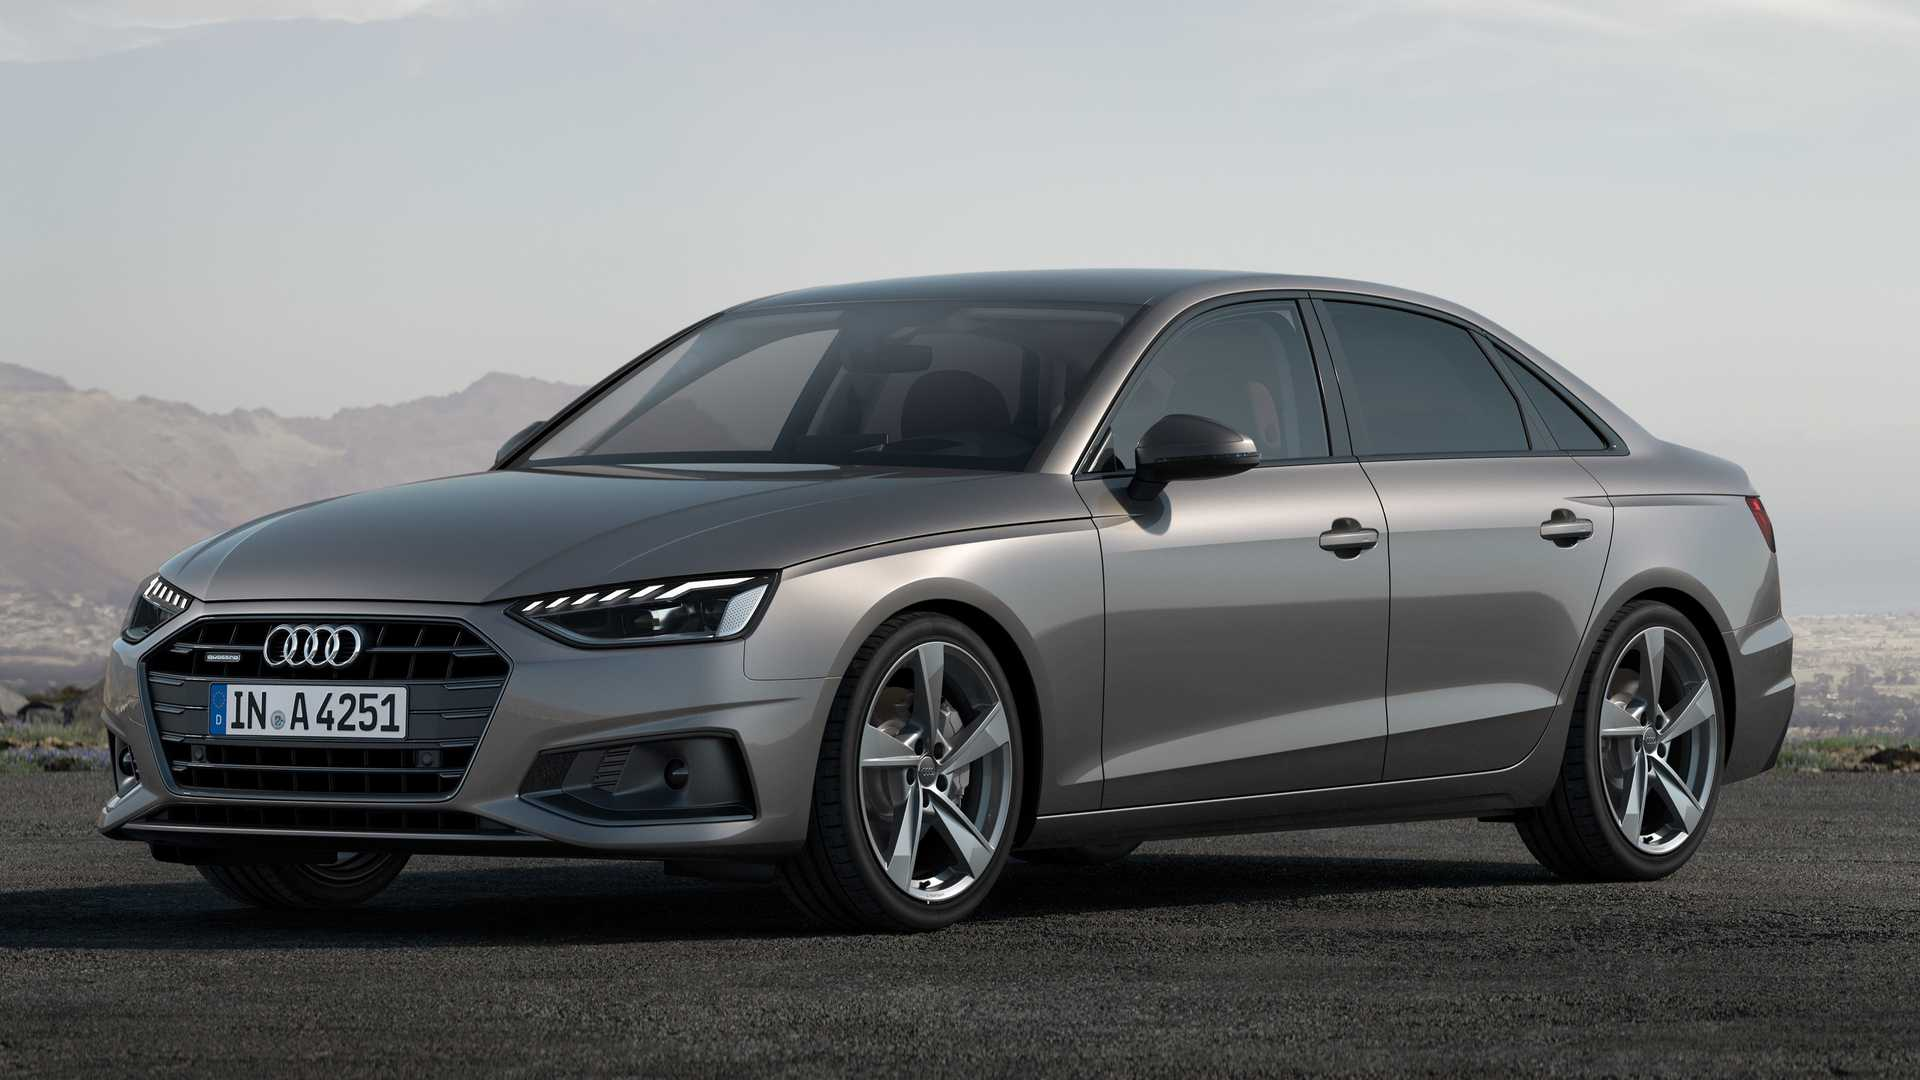 51 A Audi A4 Model Year 2020 First Drive